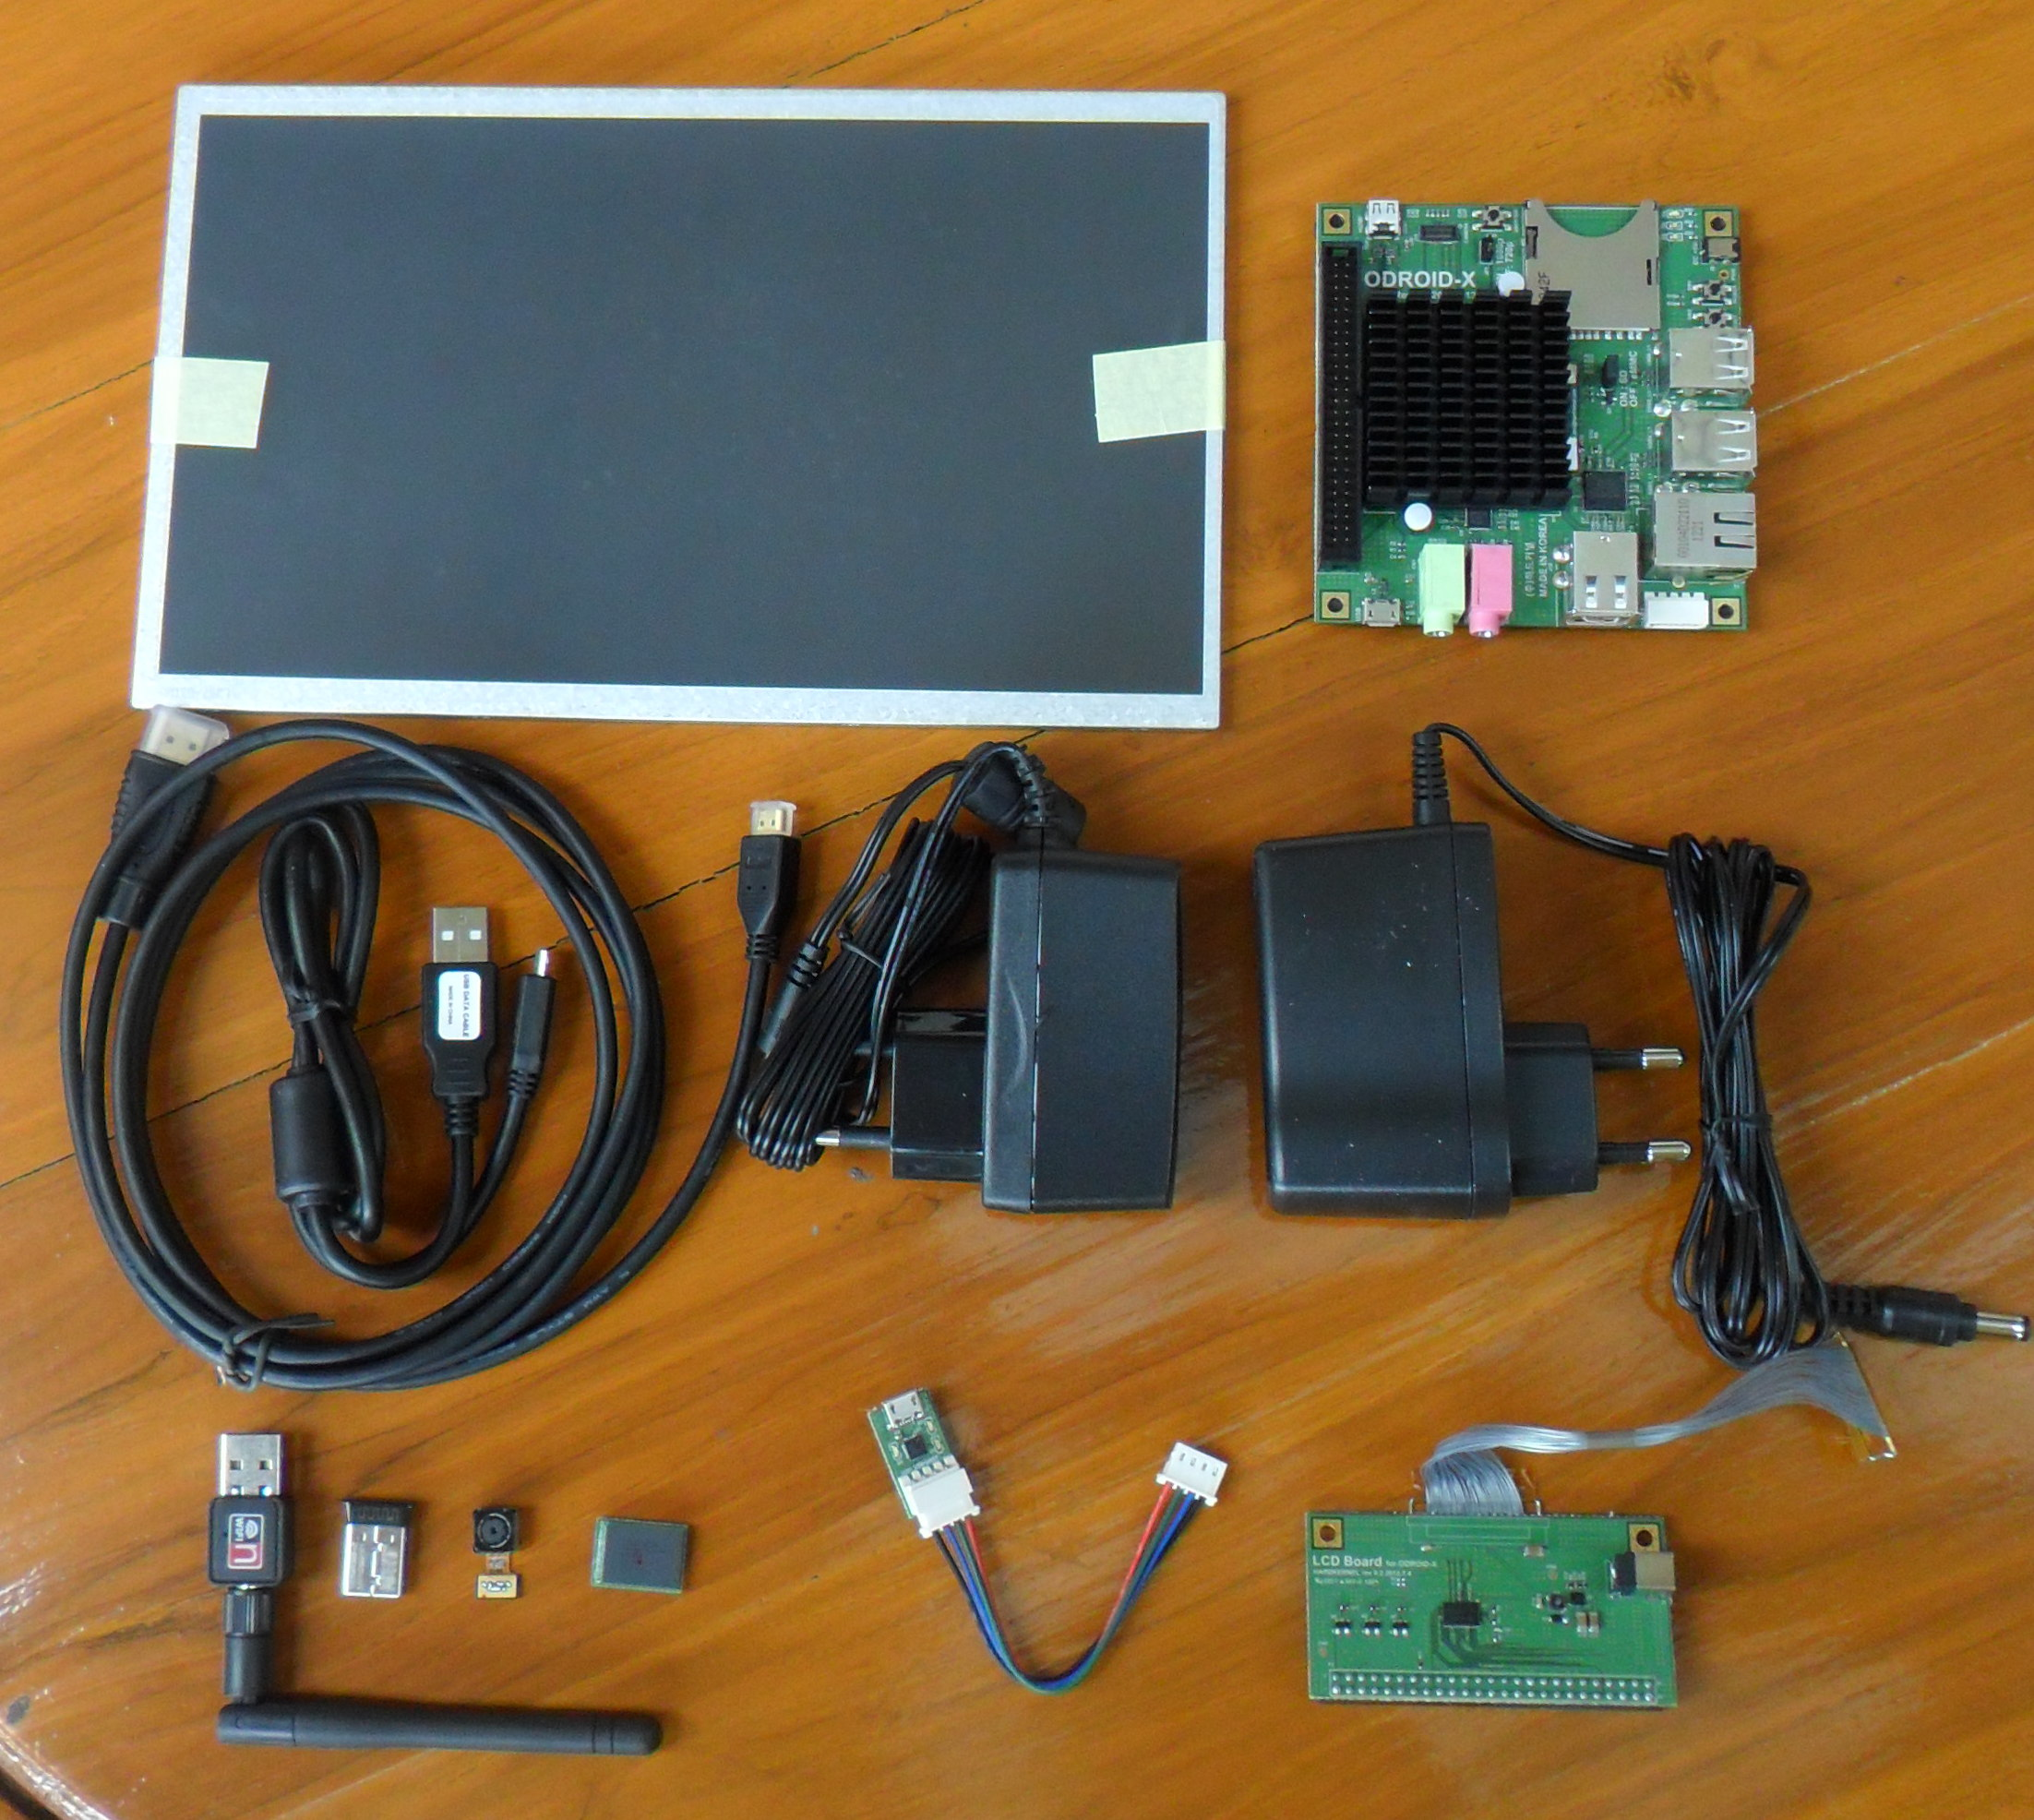 HardKernel ODroid-X Development Board Unboxing And First